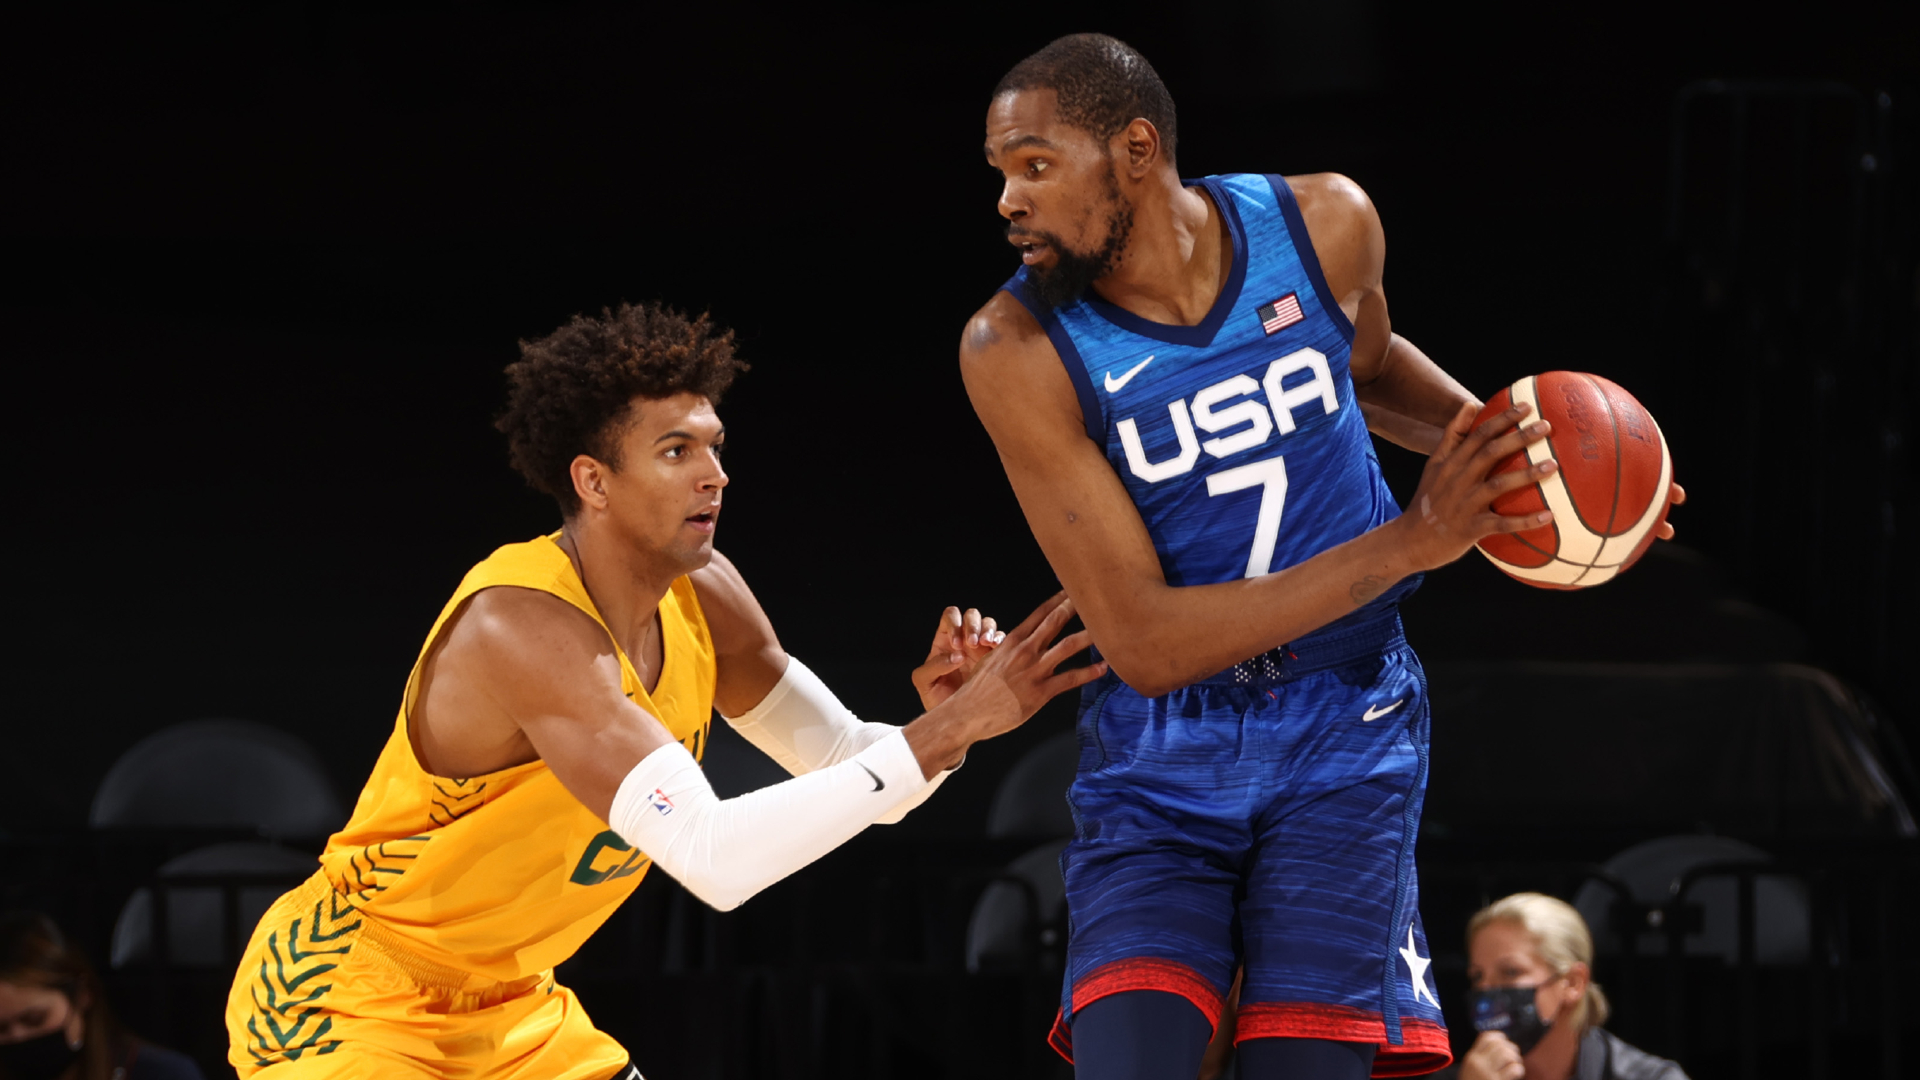 Olympic Basketball Preview: Field loaded with NBA talent